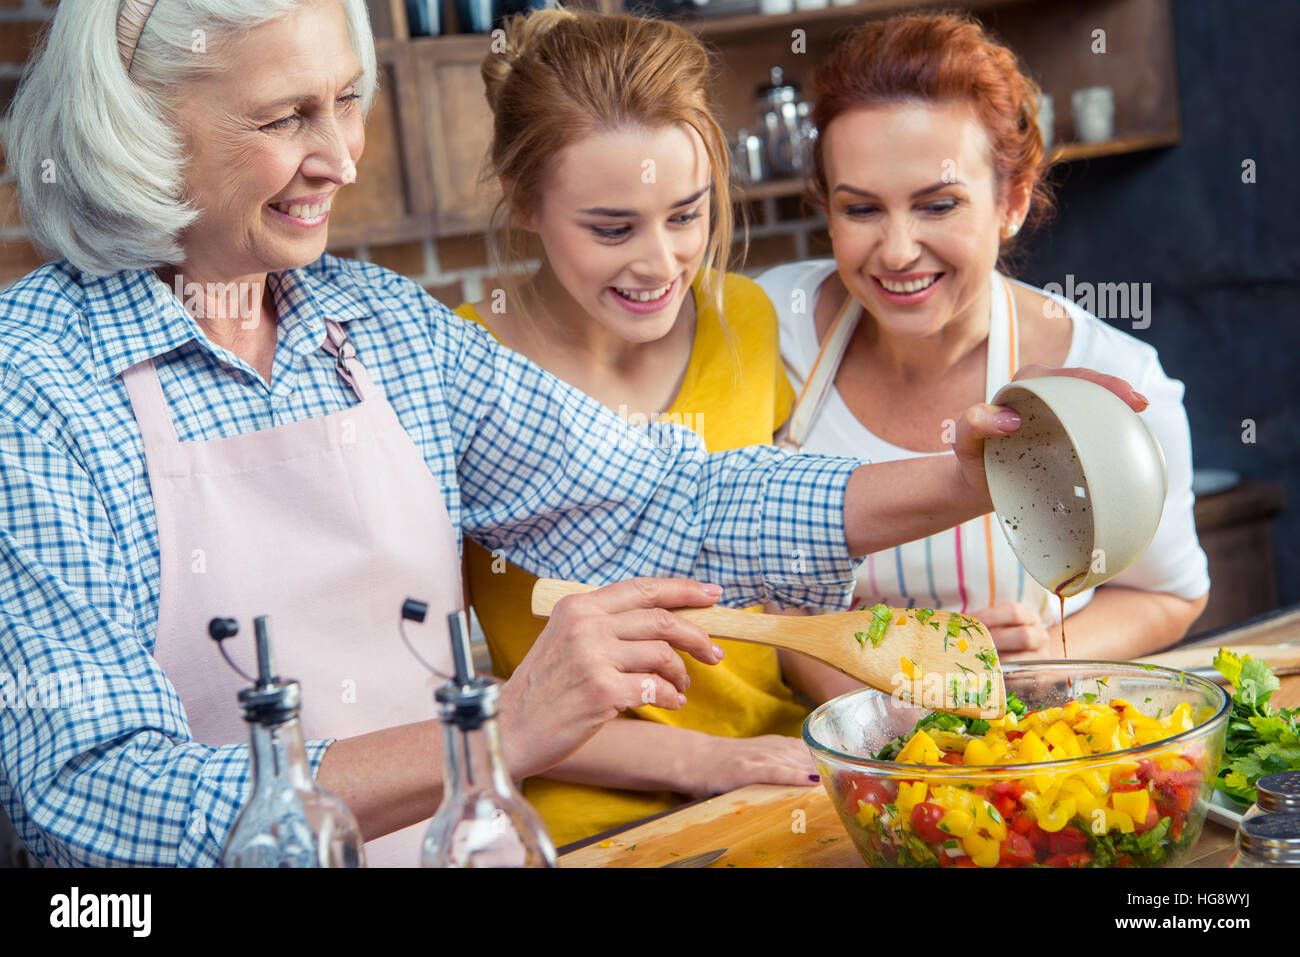 Happy three-generation family cooking vegetable salad together in kitchen Stock Photo